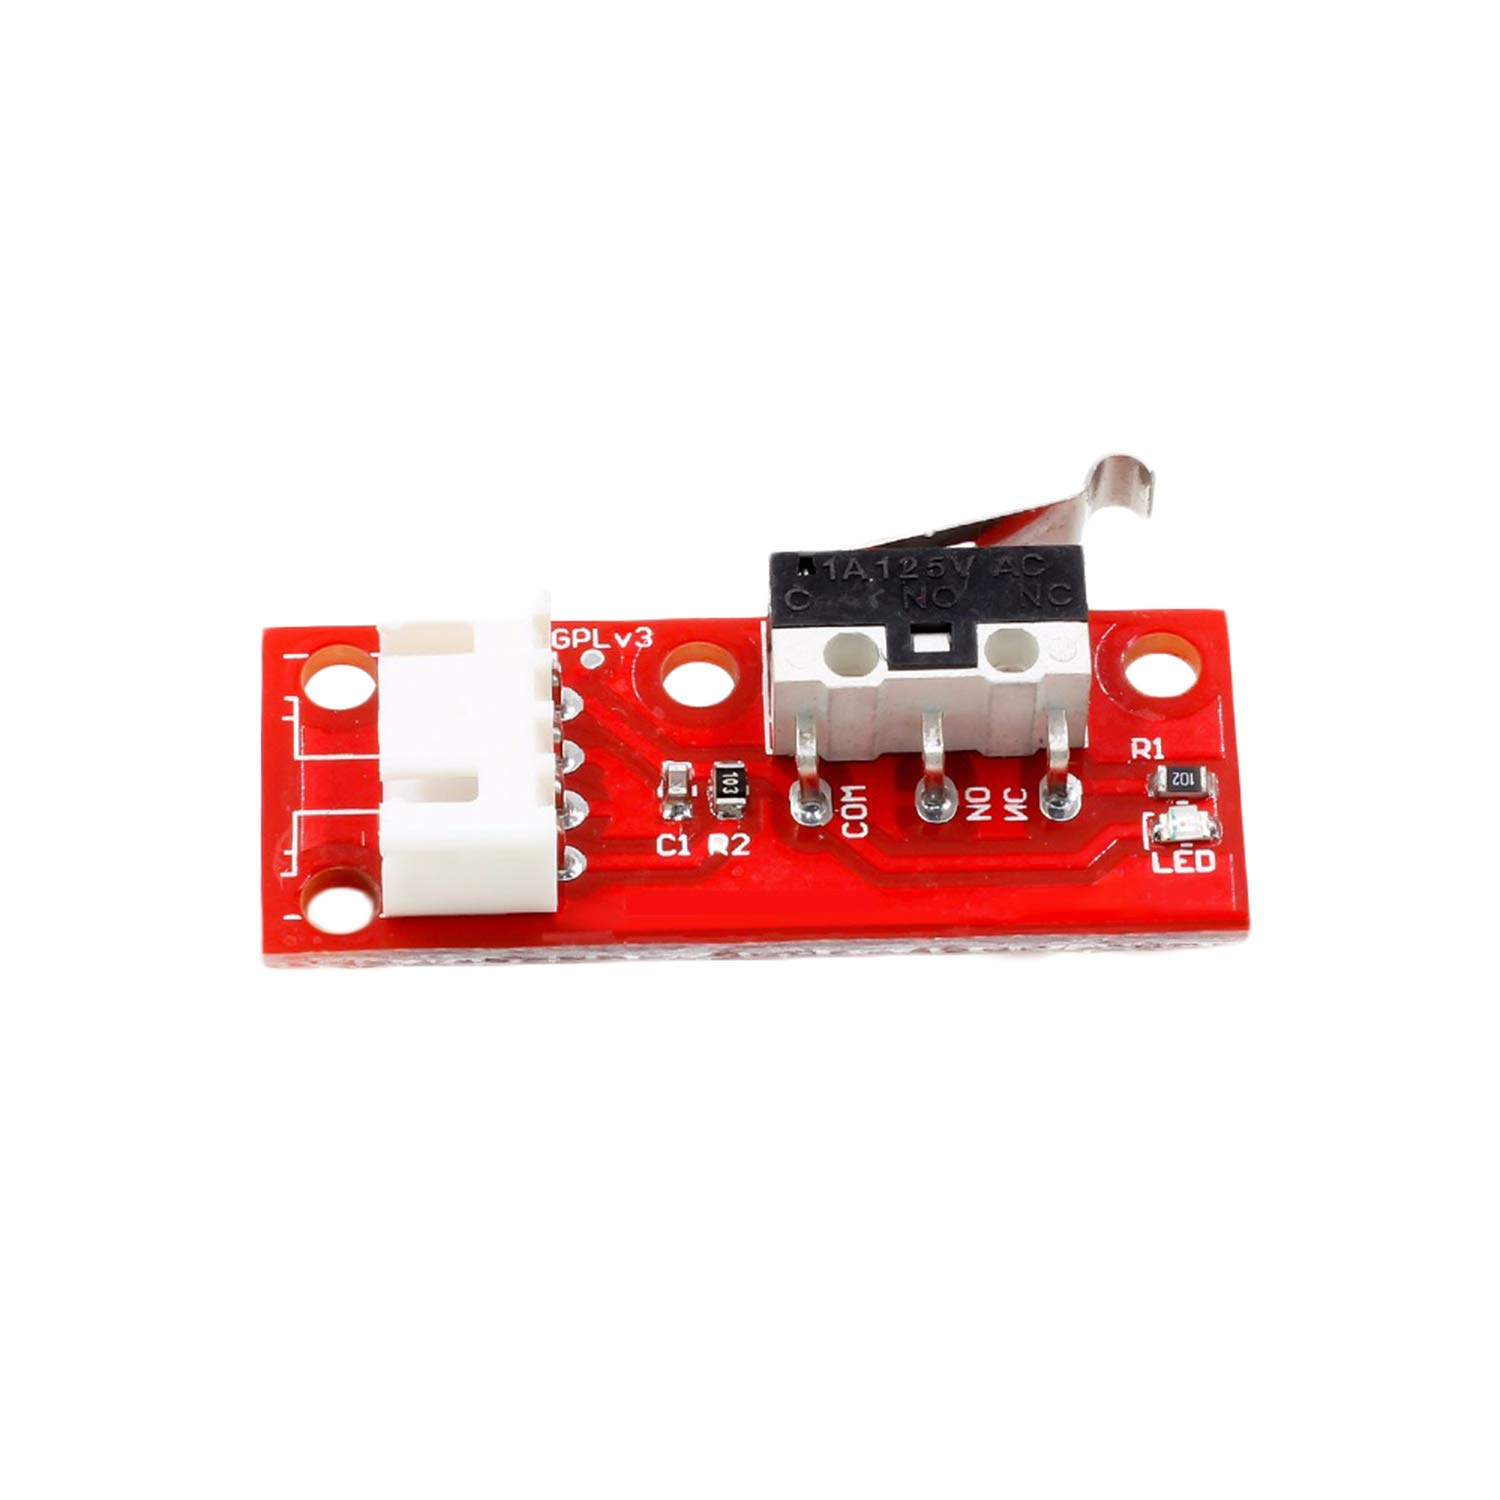 RAMPS 1.4 Optical Endstop Switch Sensor Module Light Control Limit Board with Cable 3D Printer Parts CNC Arduino Electronic